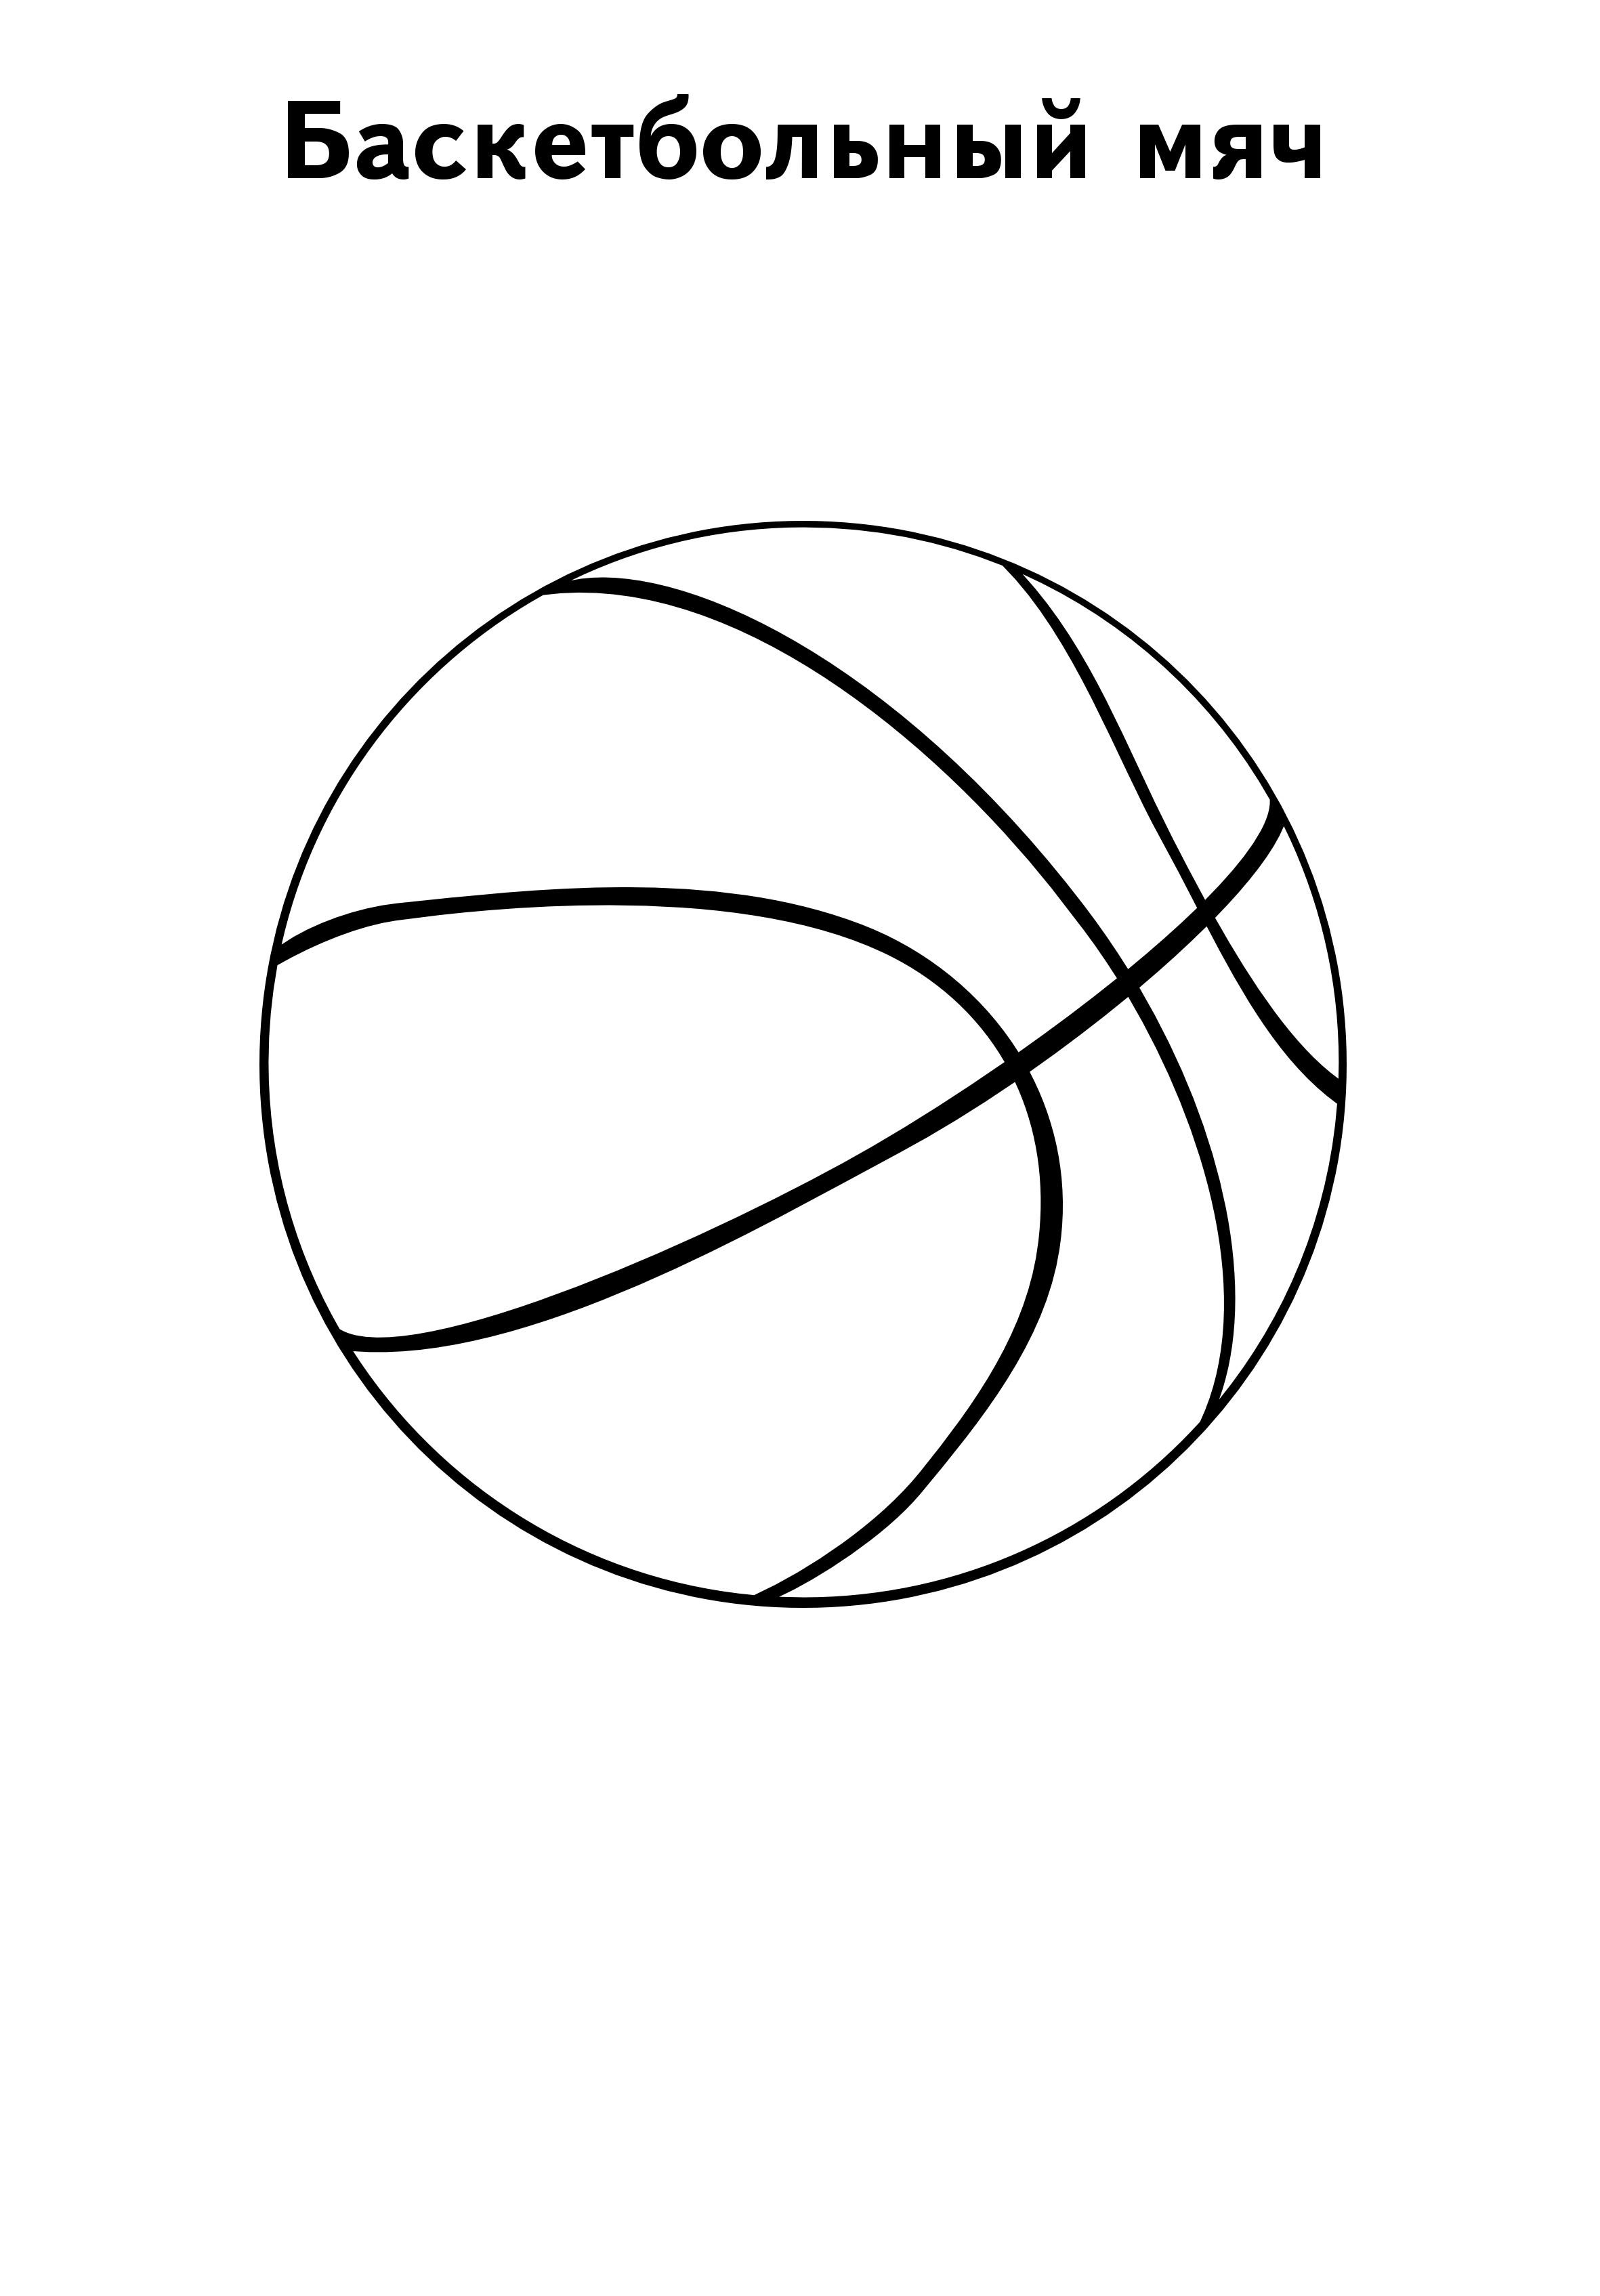 colouring picture of a ball ball coloring pages for kids to print for free ball picture a of colouring